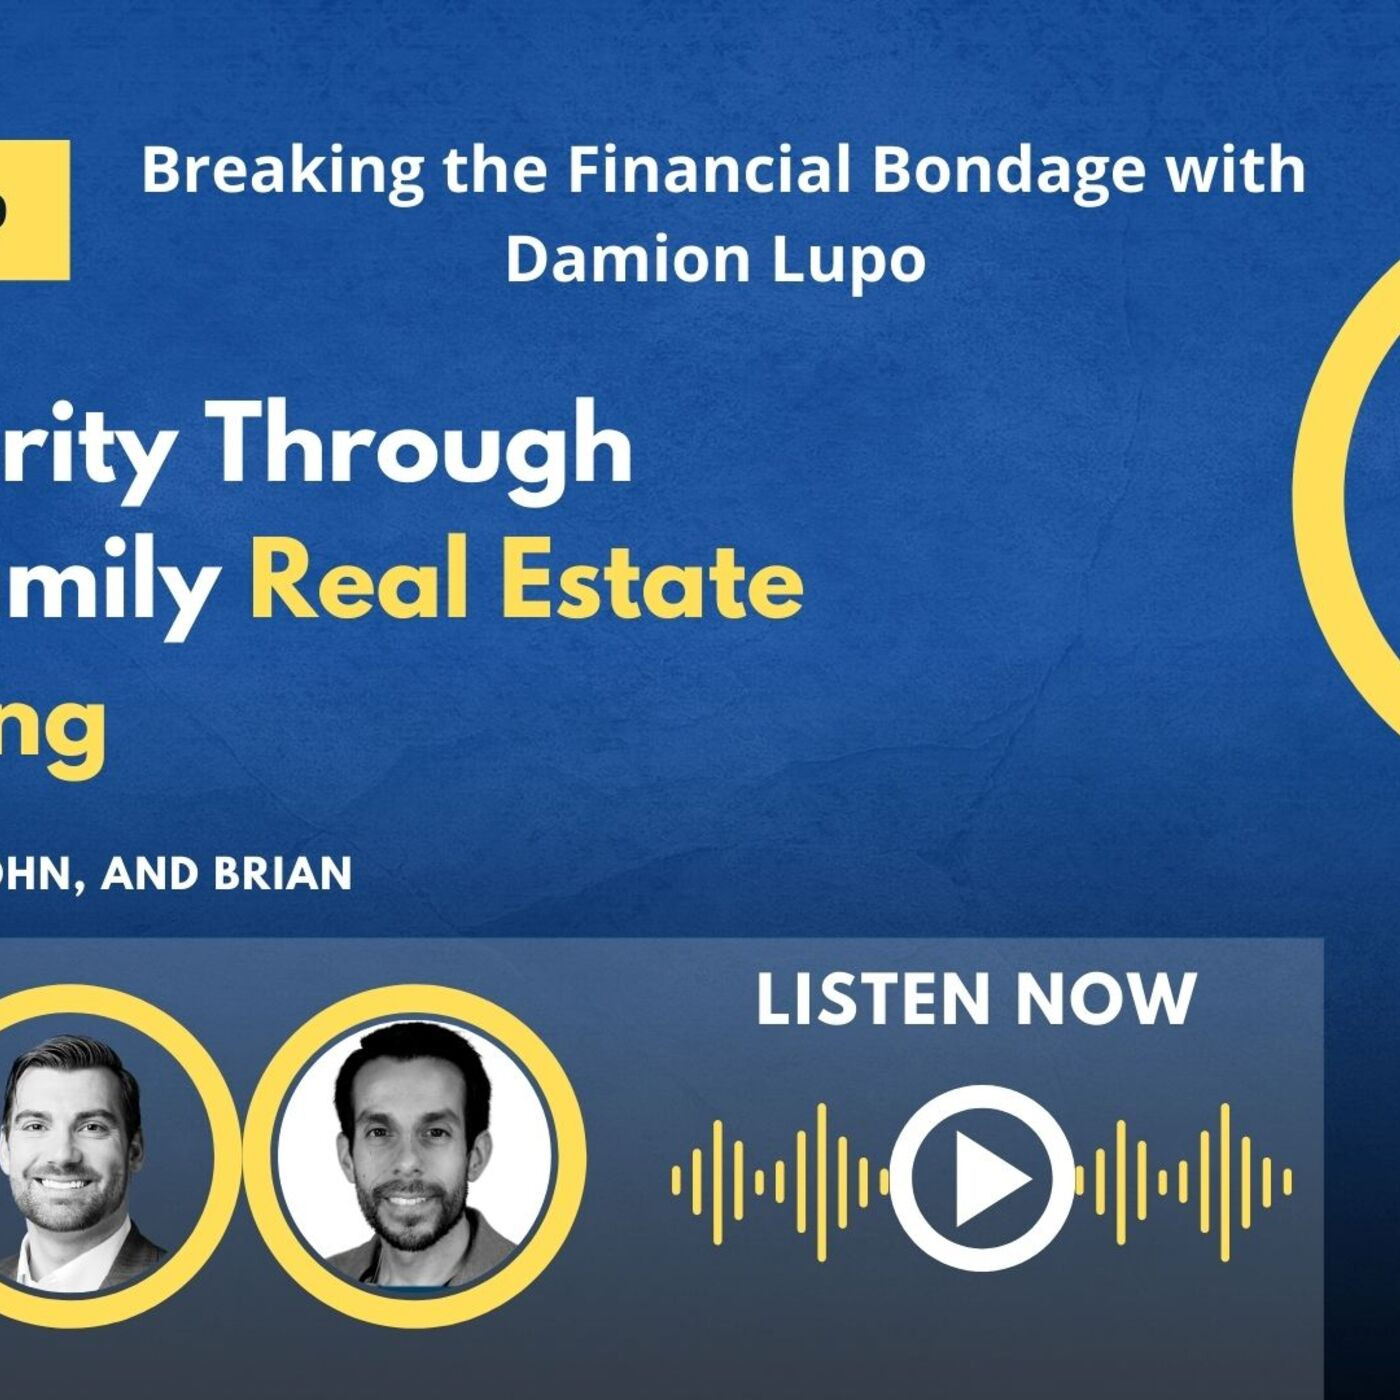 Breaking the Financial Bondage with Damion Lupo